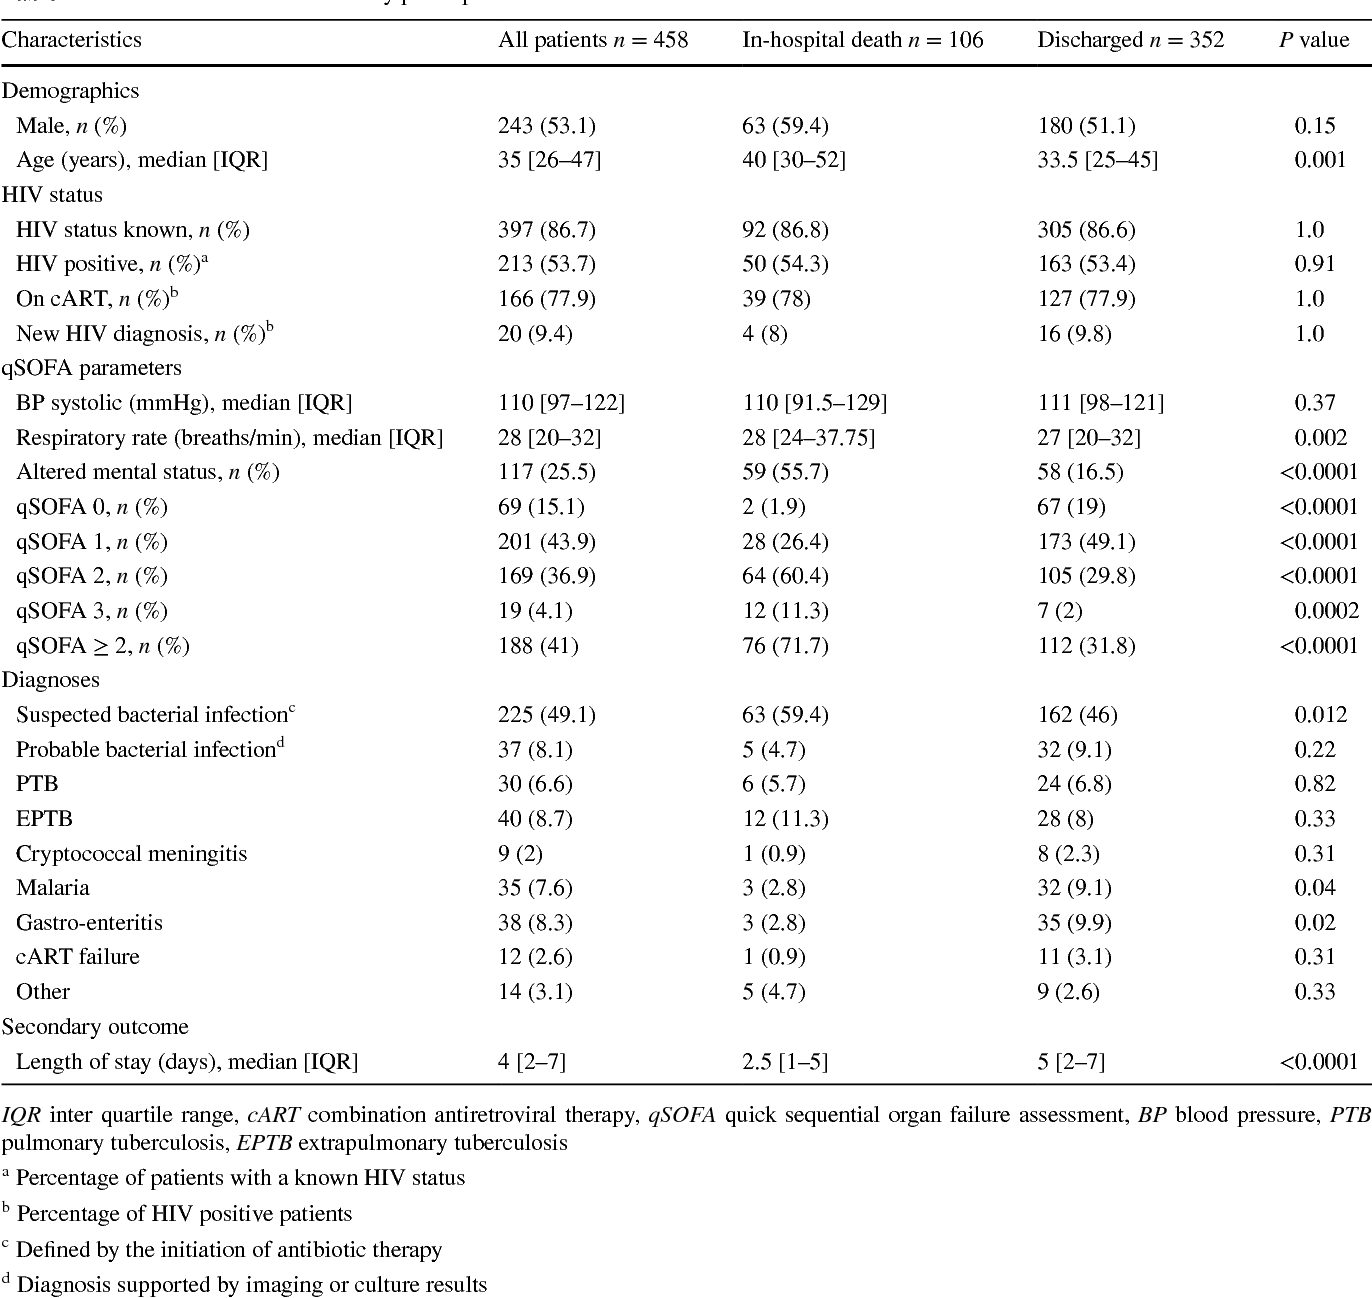 Qsofa Meta Analysis Table 1 From Application Of The Qsofa Score To Predict Mortality